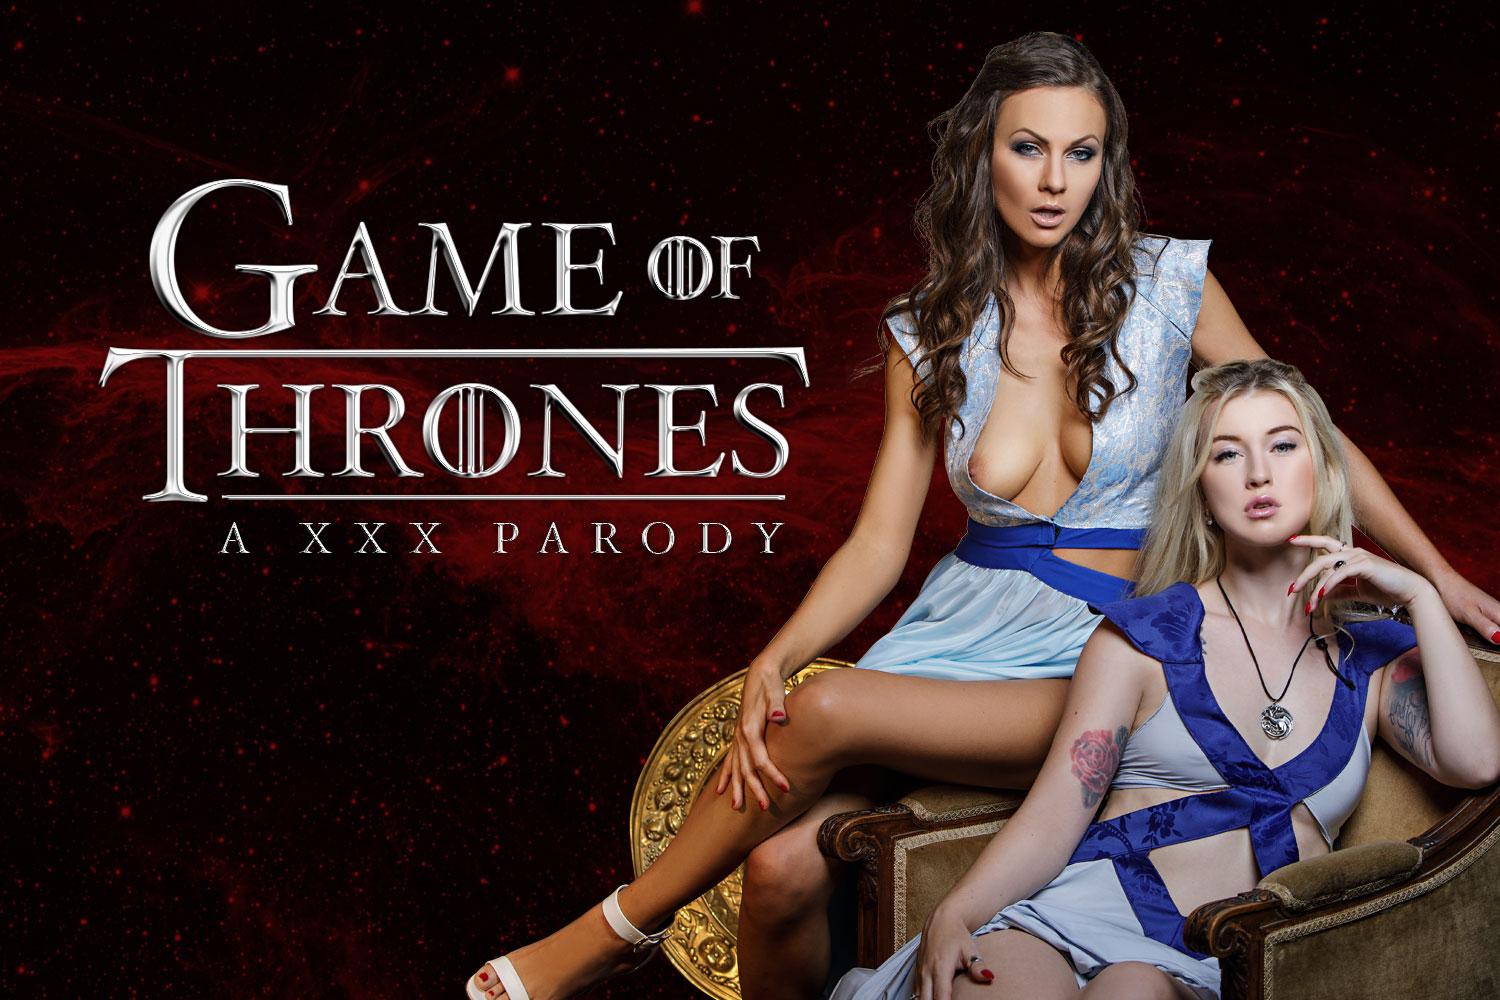 Game of Thrones Cosplay Parody